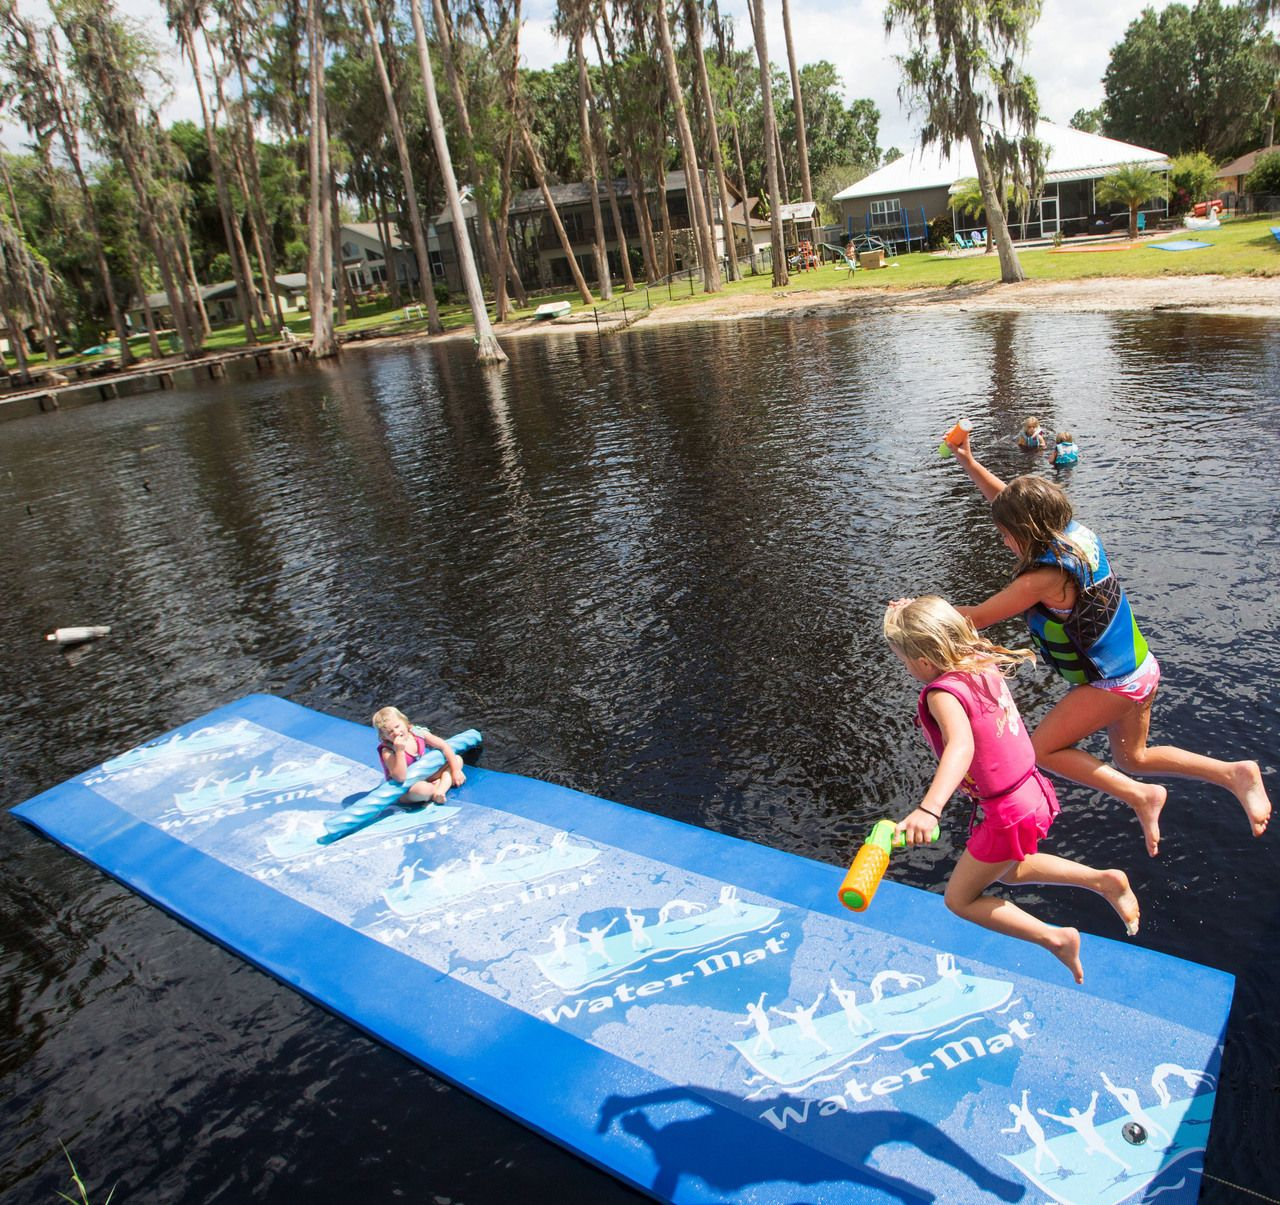 Watermat Walk On Water With This Floating Foam Mat Floating Raft Lake Toys Beach Cabin